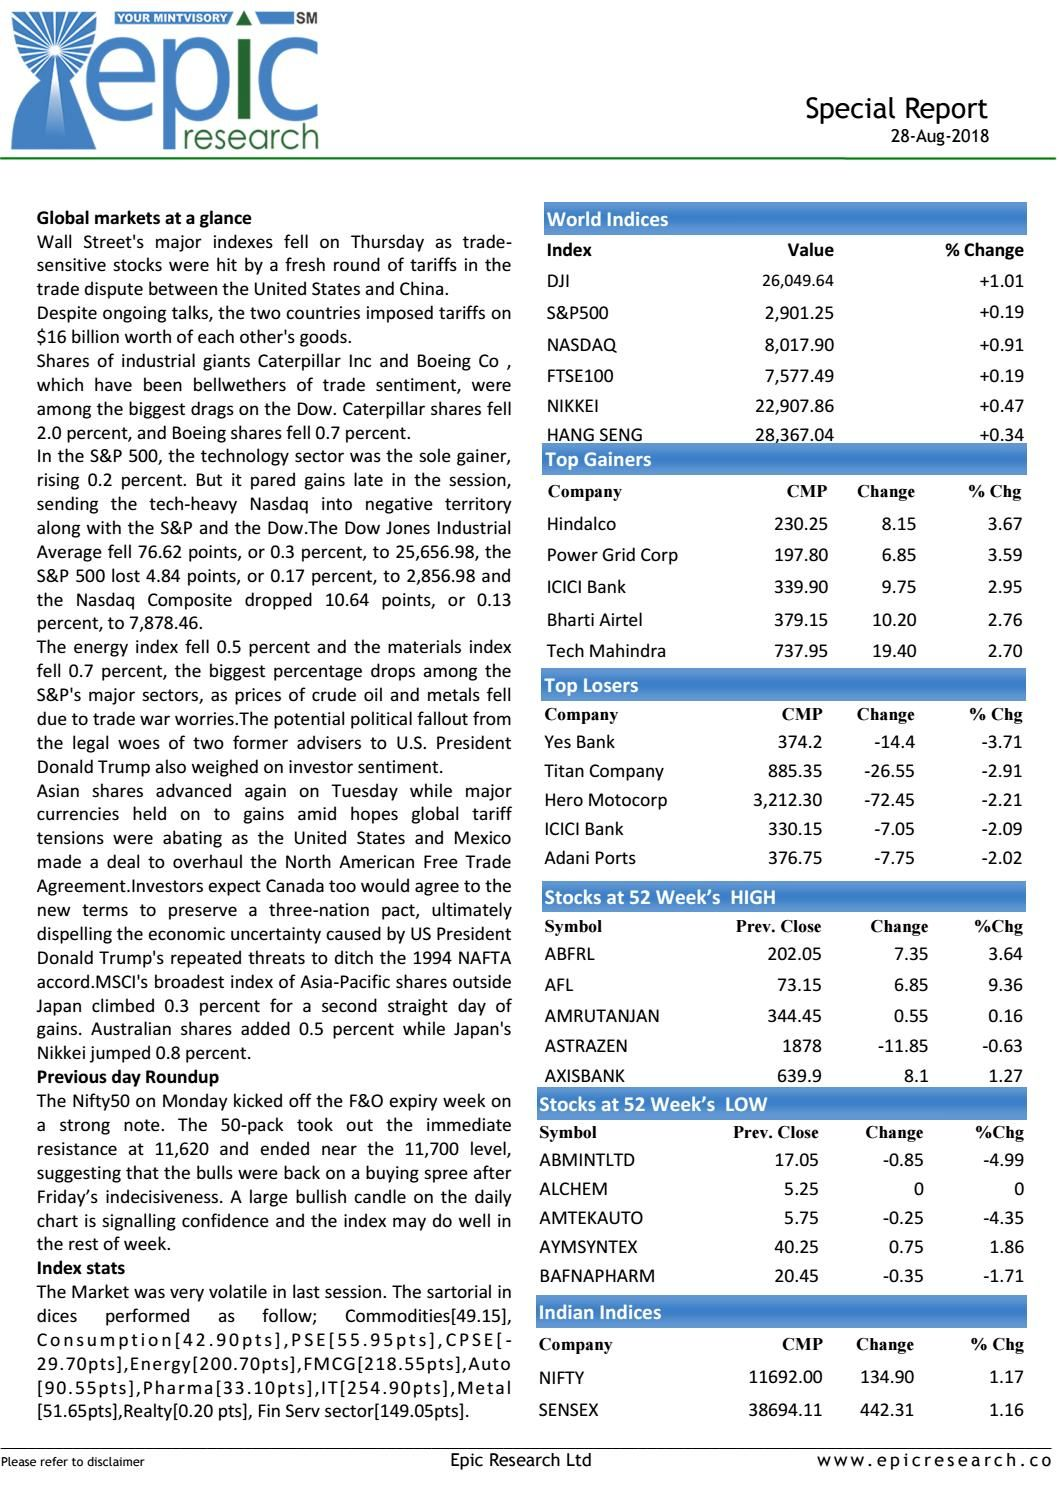 Special report28august2018epicresearch Investing in